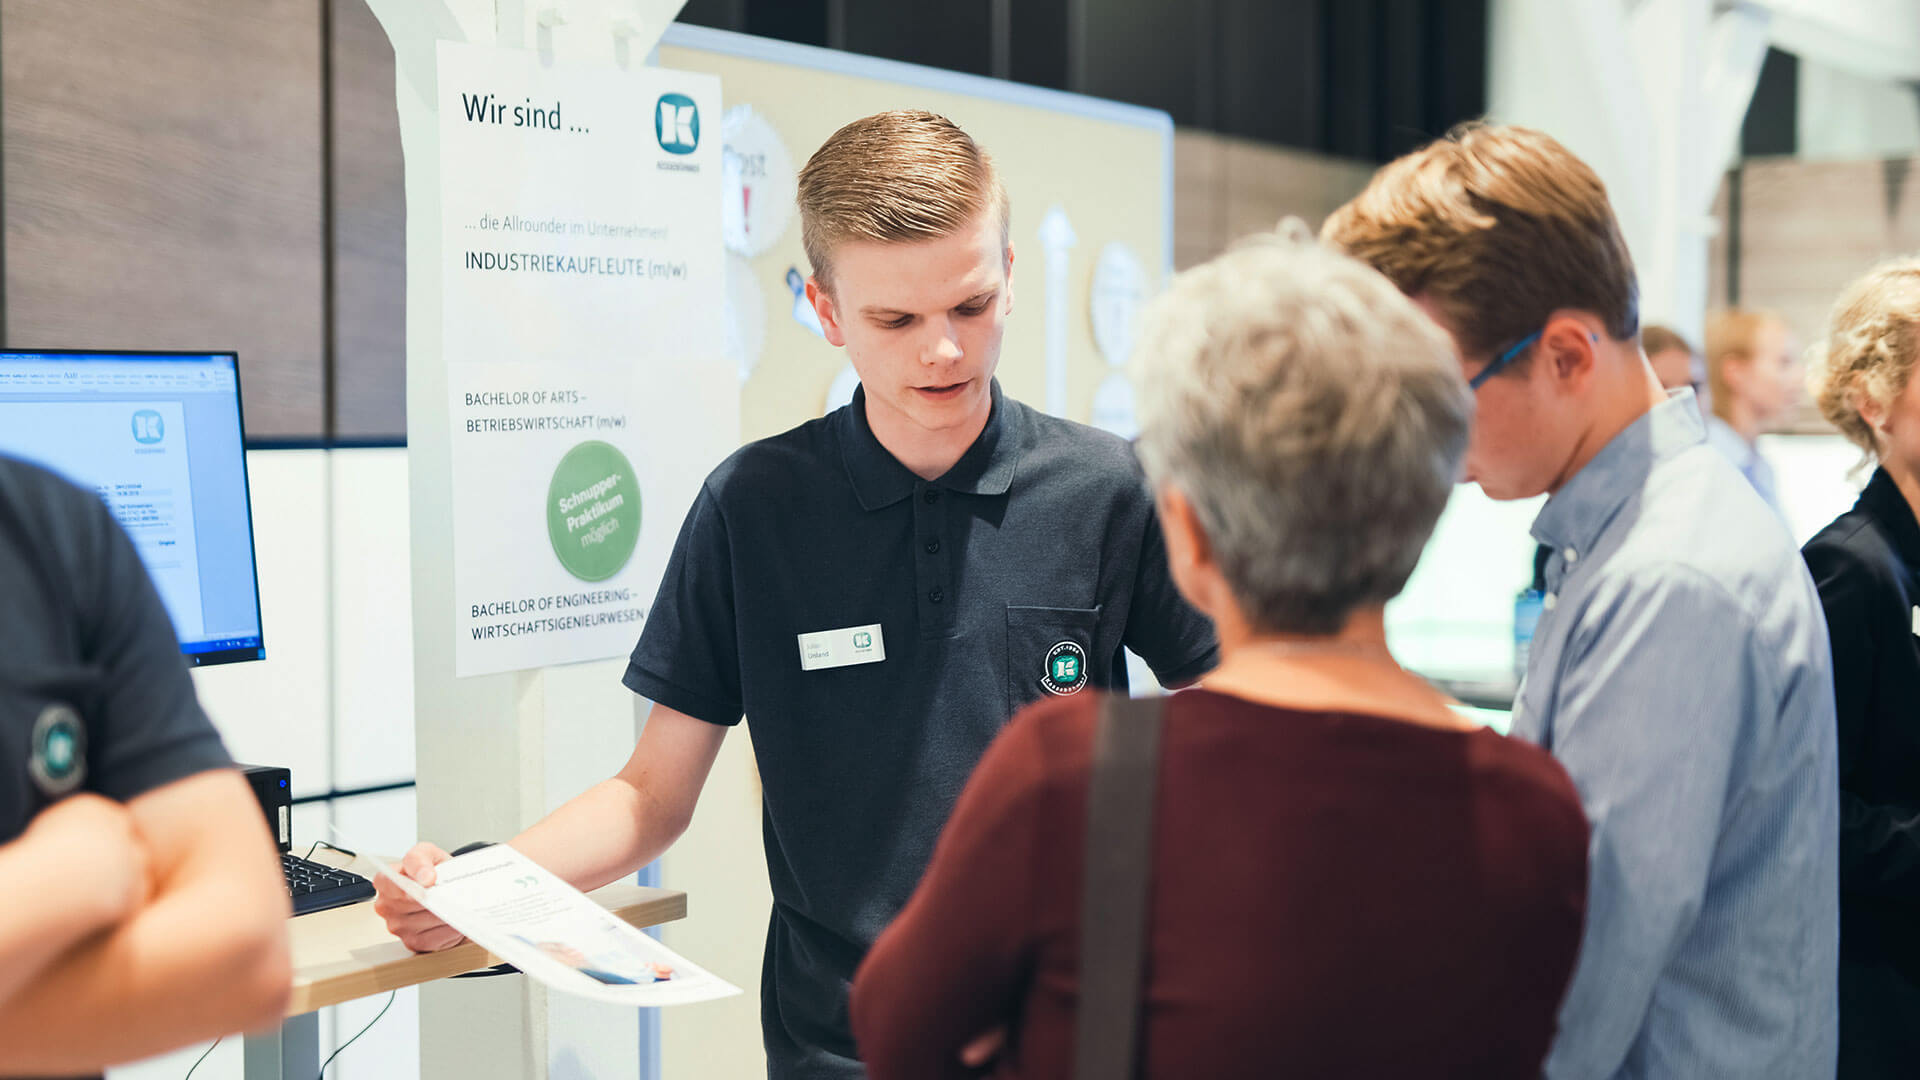 Post-event report: Open evening for prospective trainees at Kesseböhmer